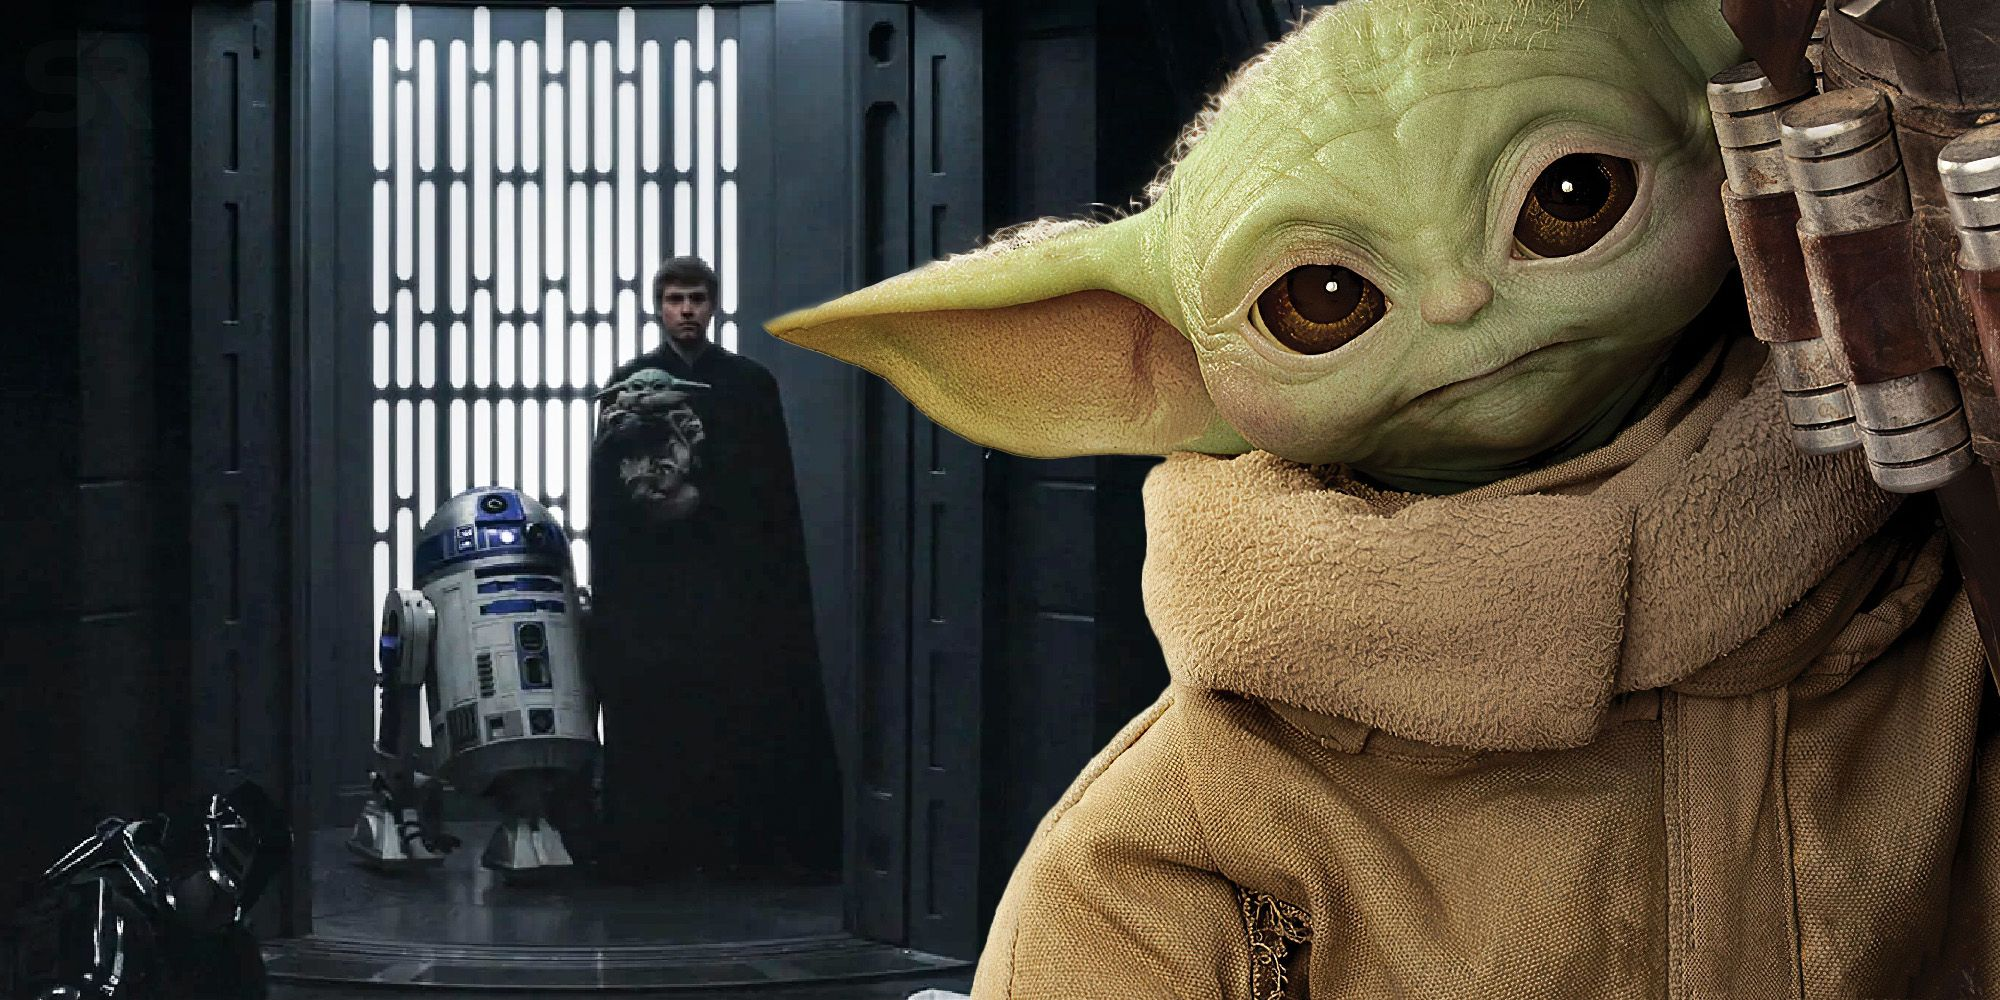 Luke takes baby Yoda is not a hole (it's a correction)